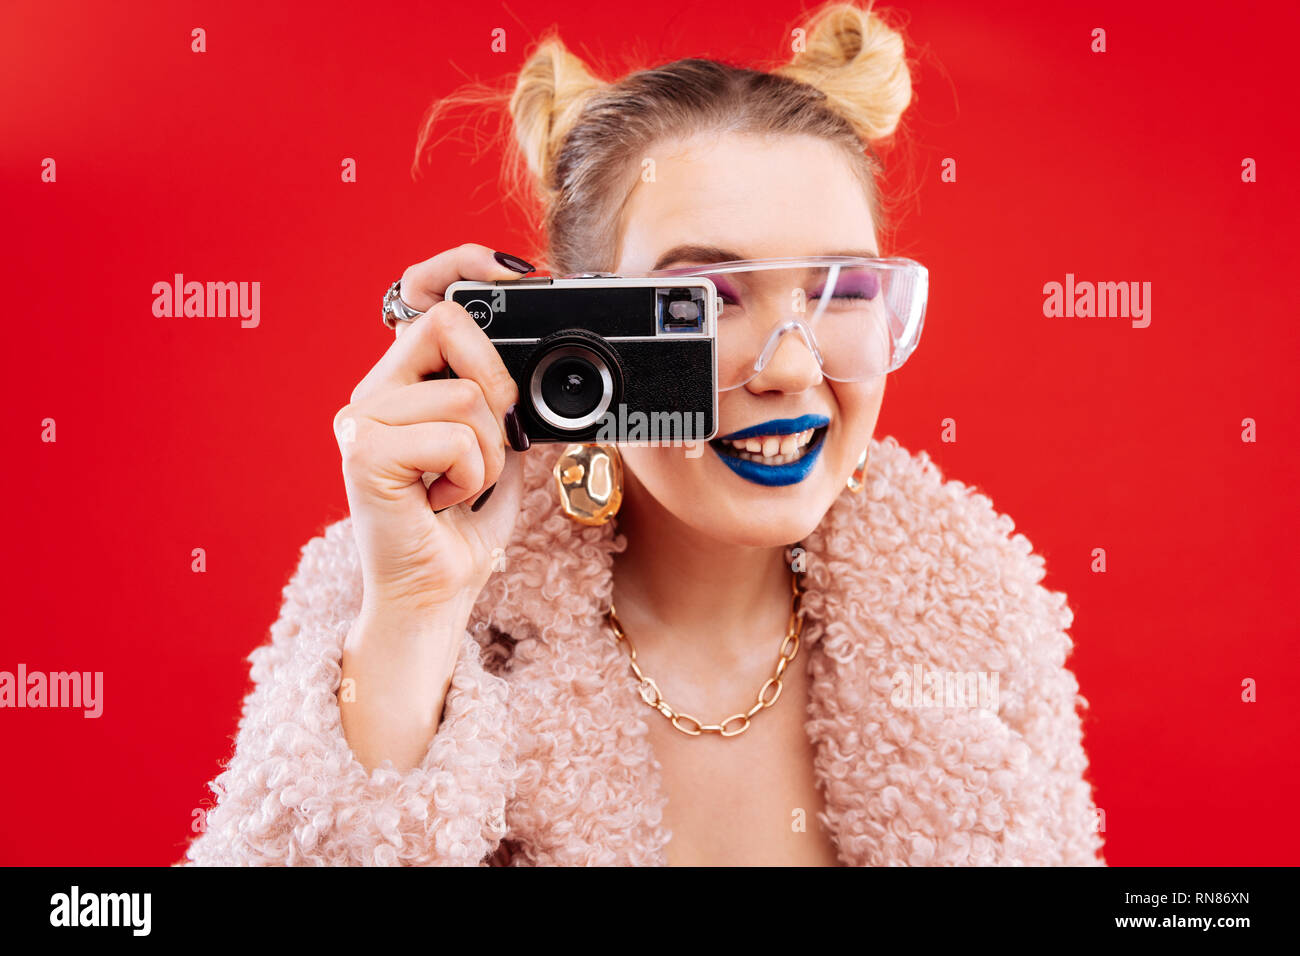 Woman with blue lips and pink eye shades using camera - Stock Image